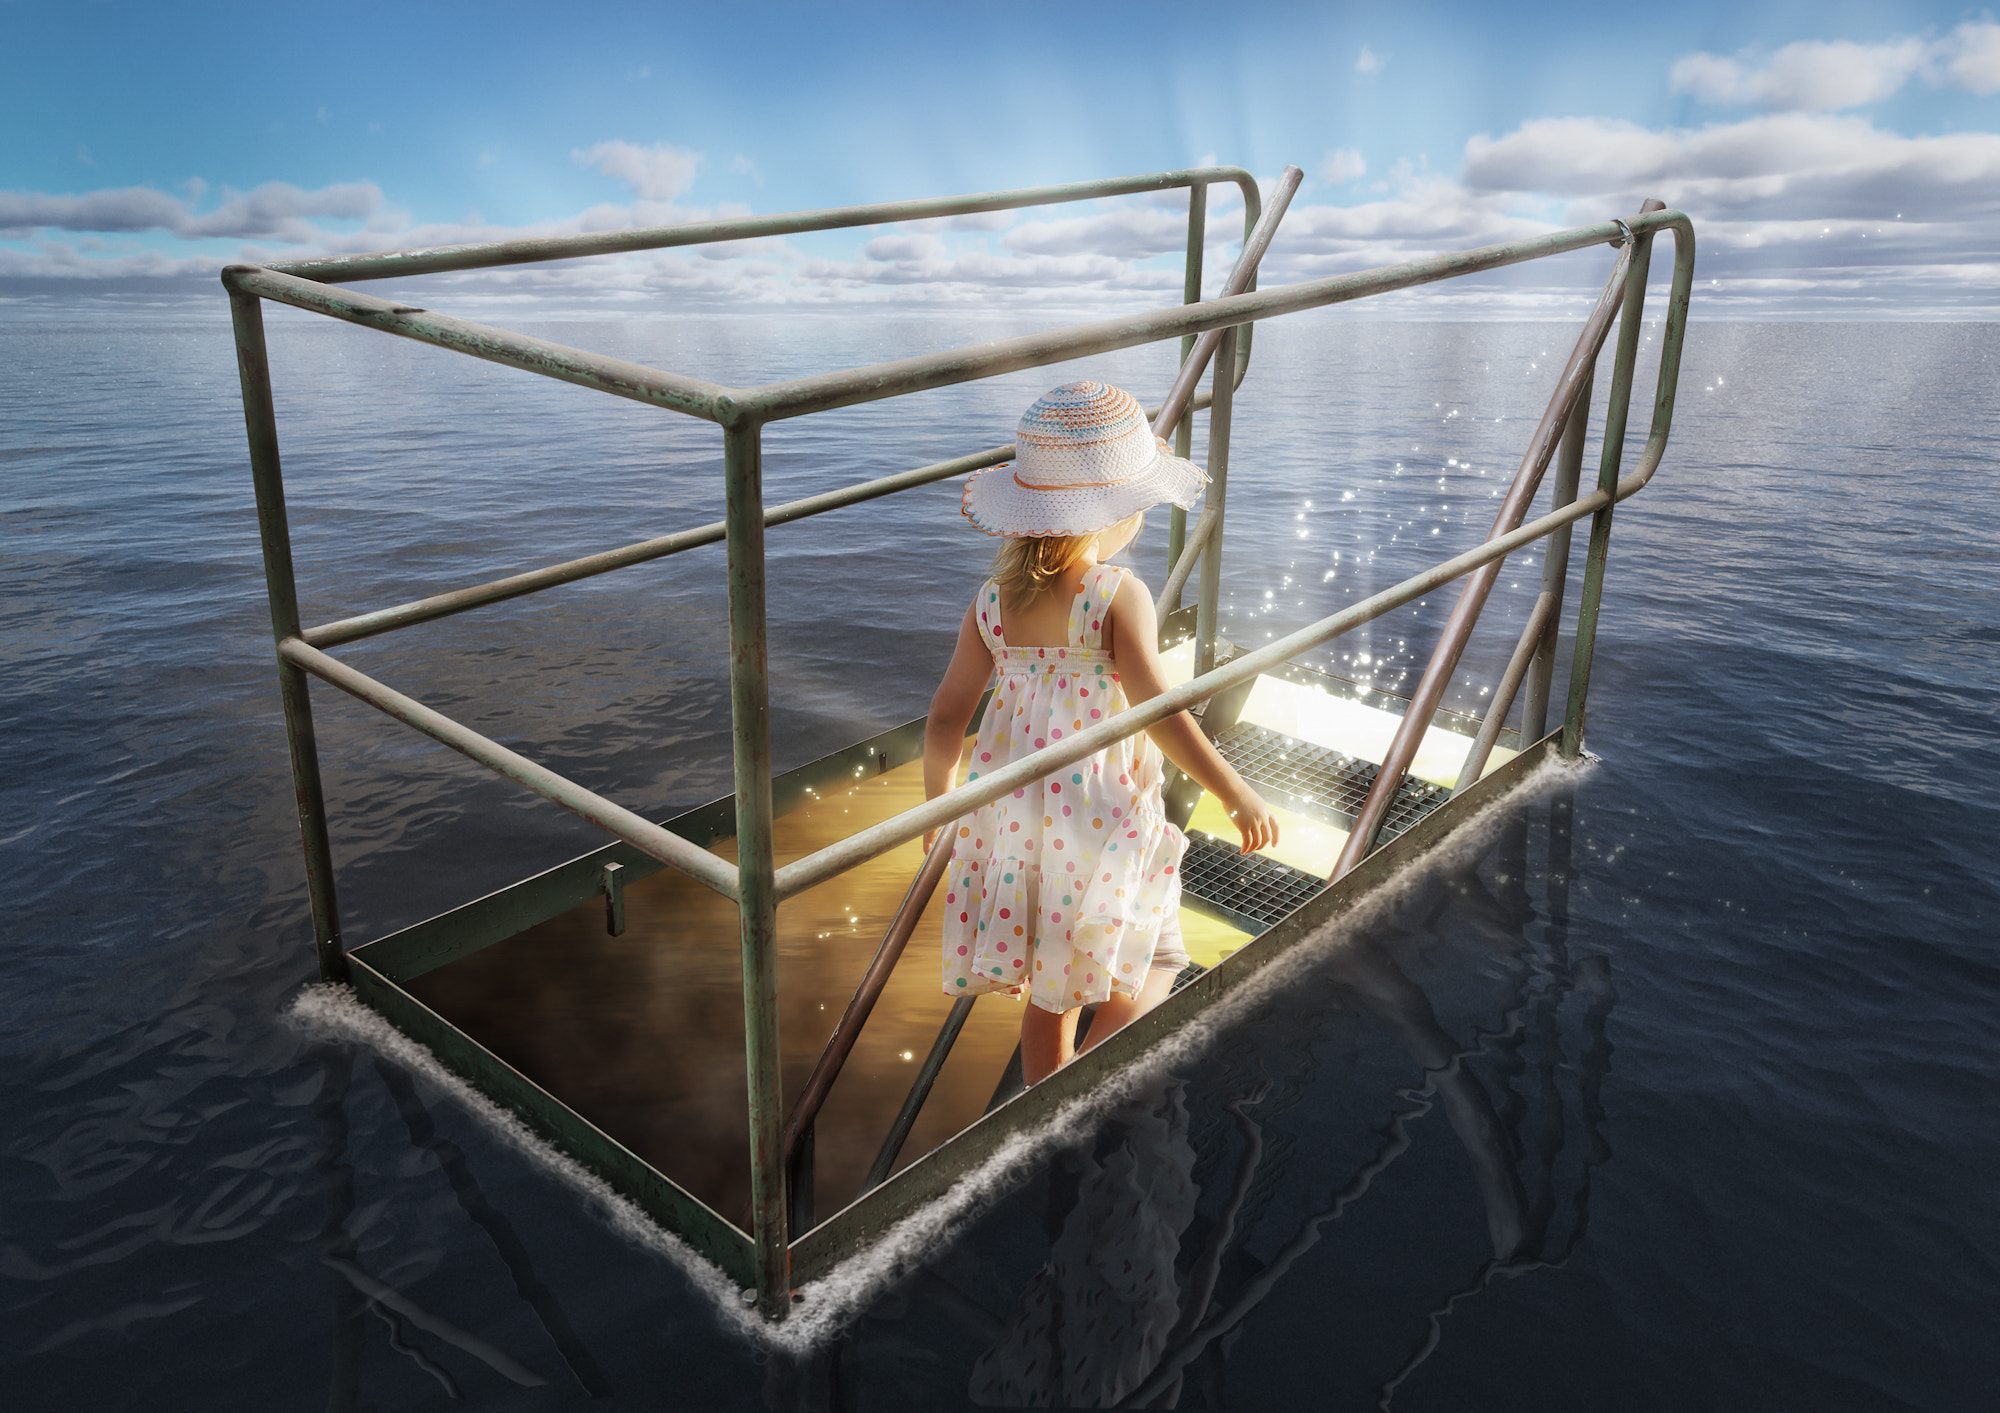 Photograph The Girl from Atlantis by John Wilhelm is a photoholic on 500px